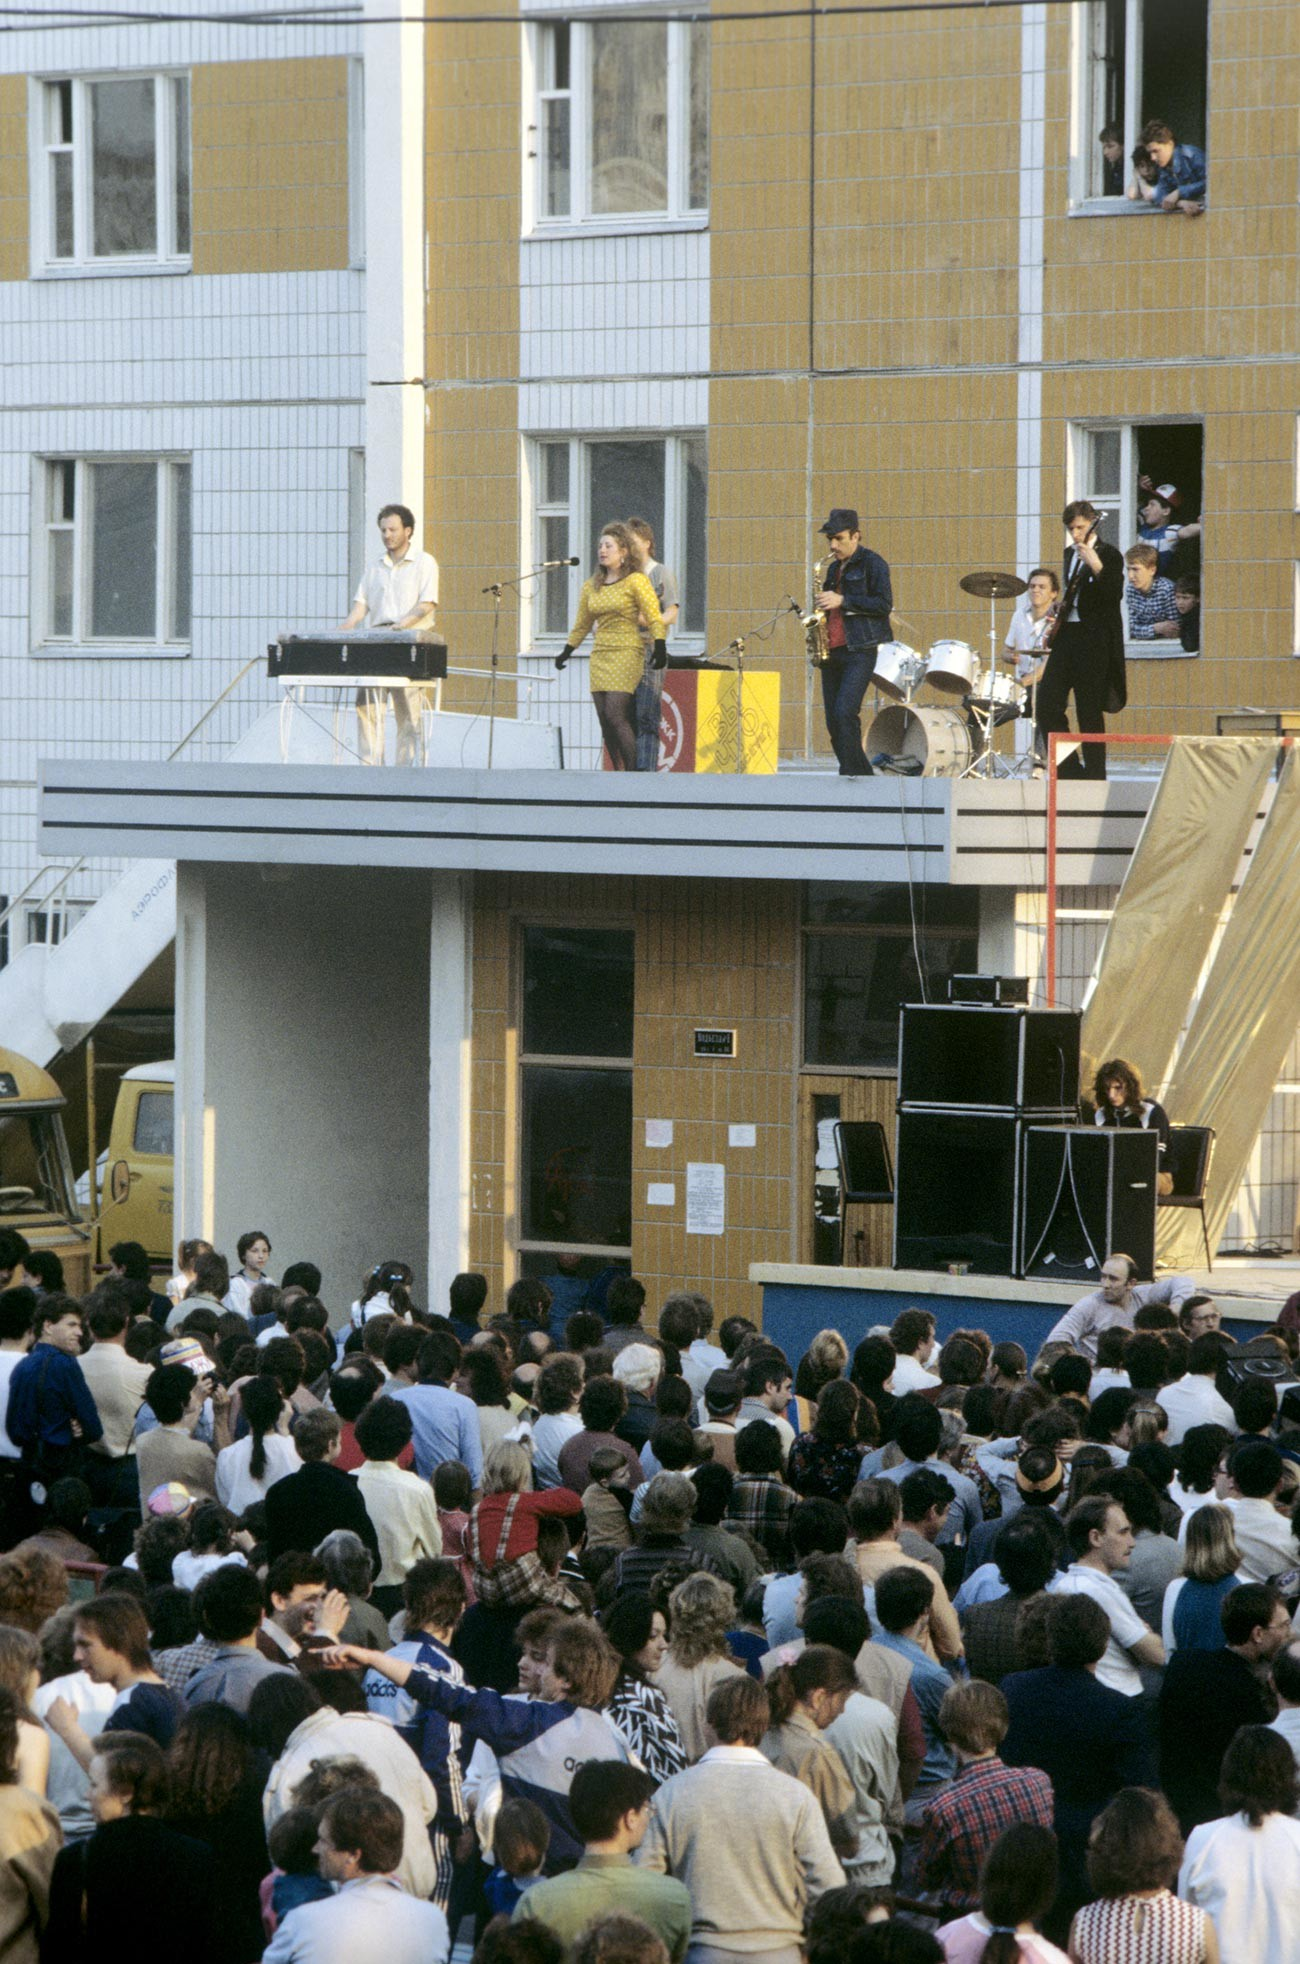 A housewarming party at the Atom residential complex for youth in Moscow.